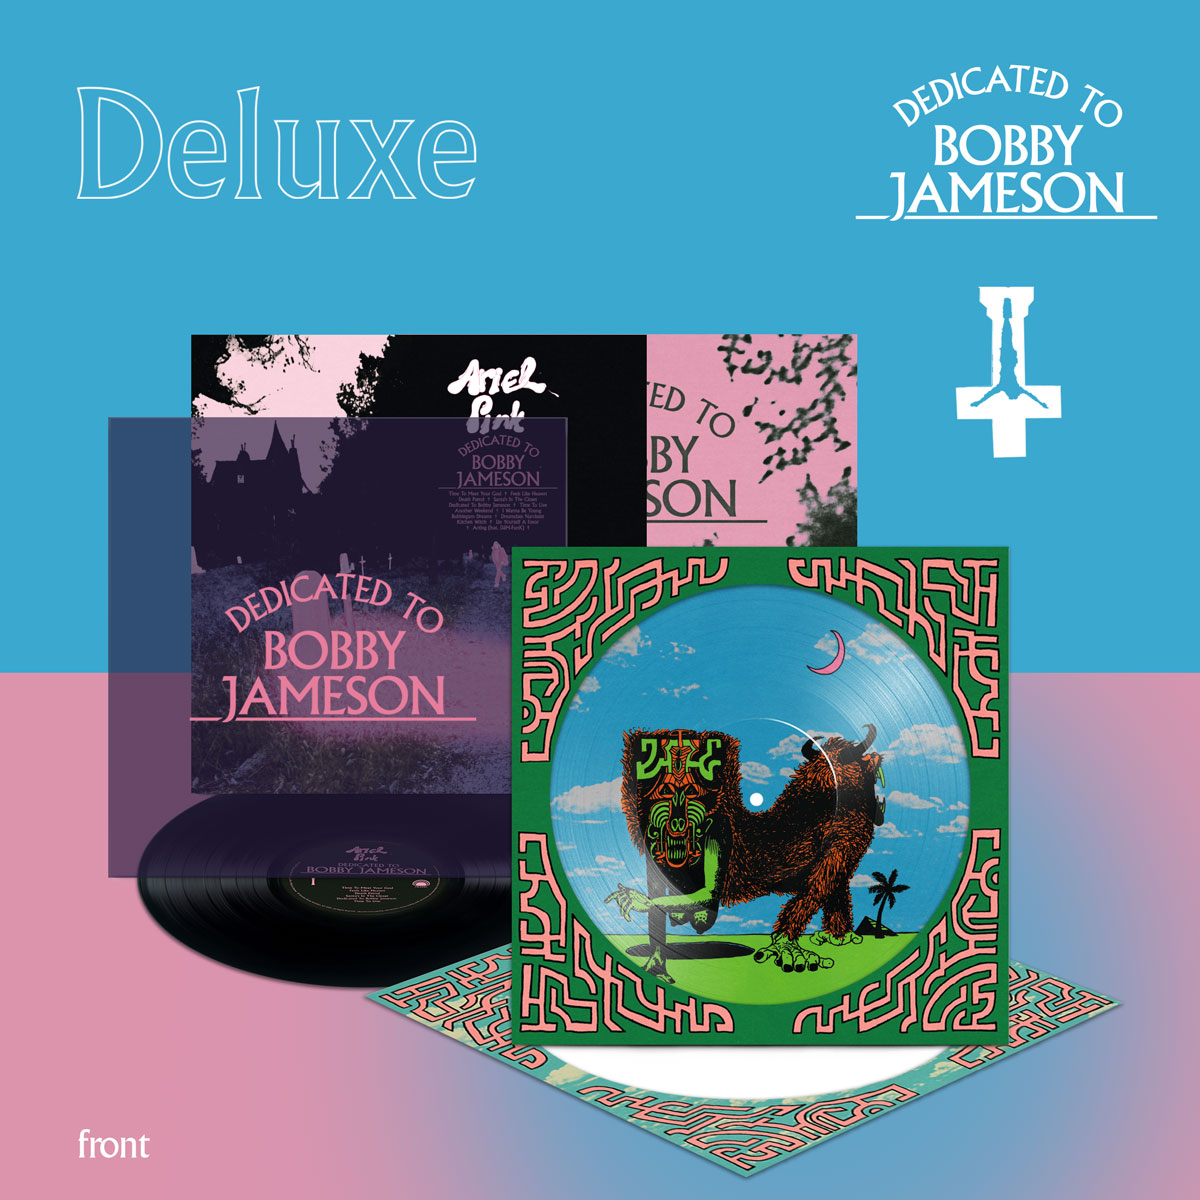 ariel pink dedicated to bobby jameson deluxe LP